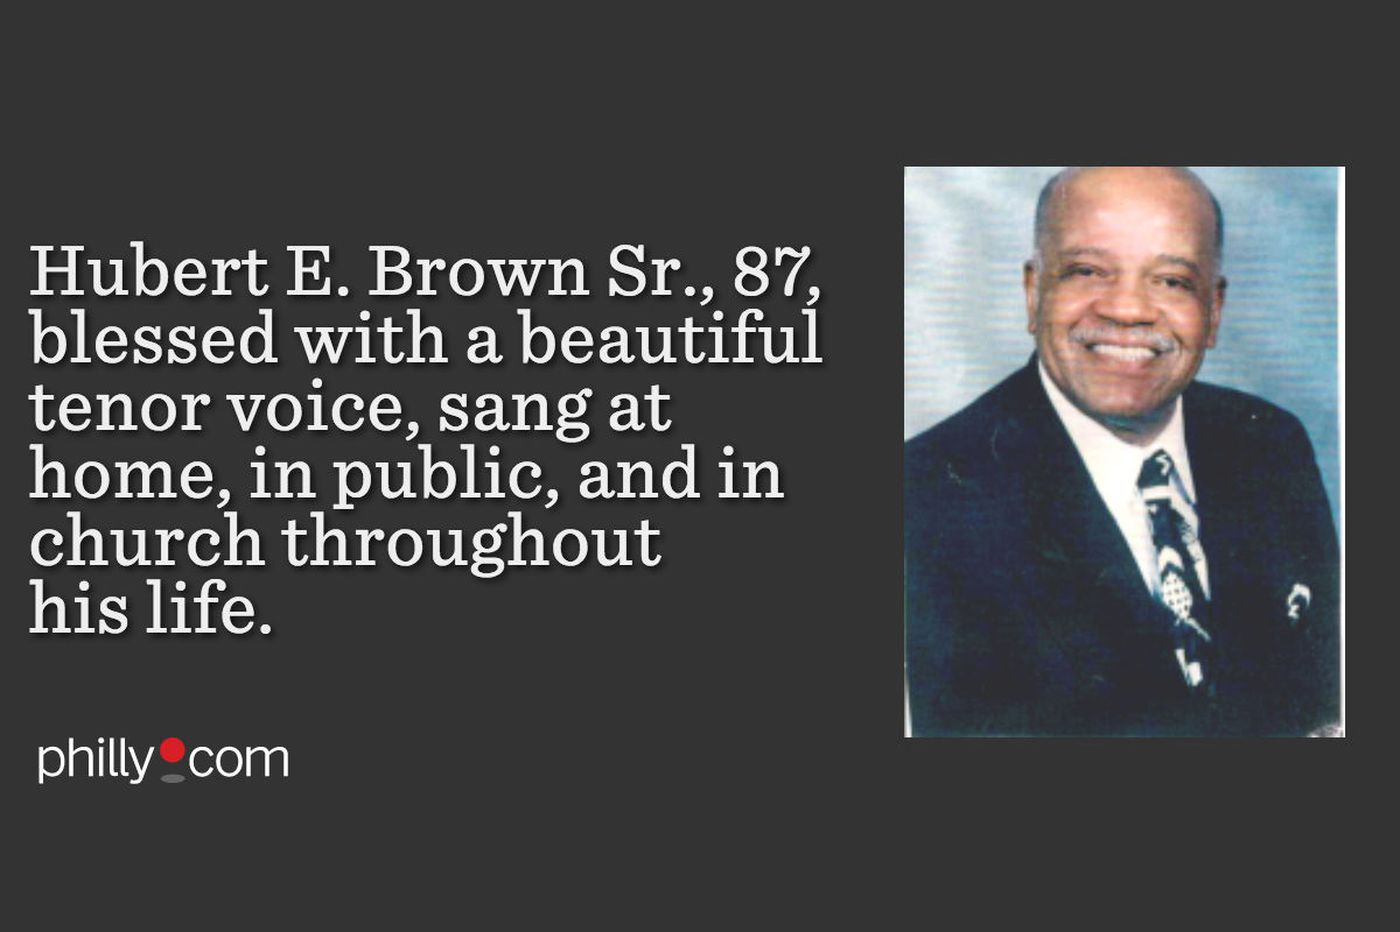 Hubert E. Brown Sr., 87, retired Philly police officer and gifted singer